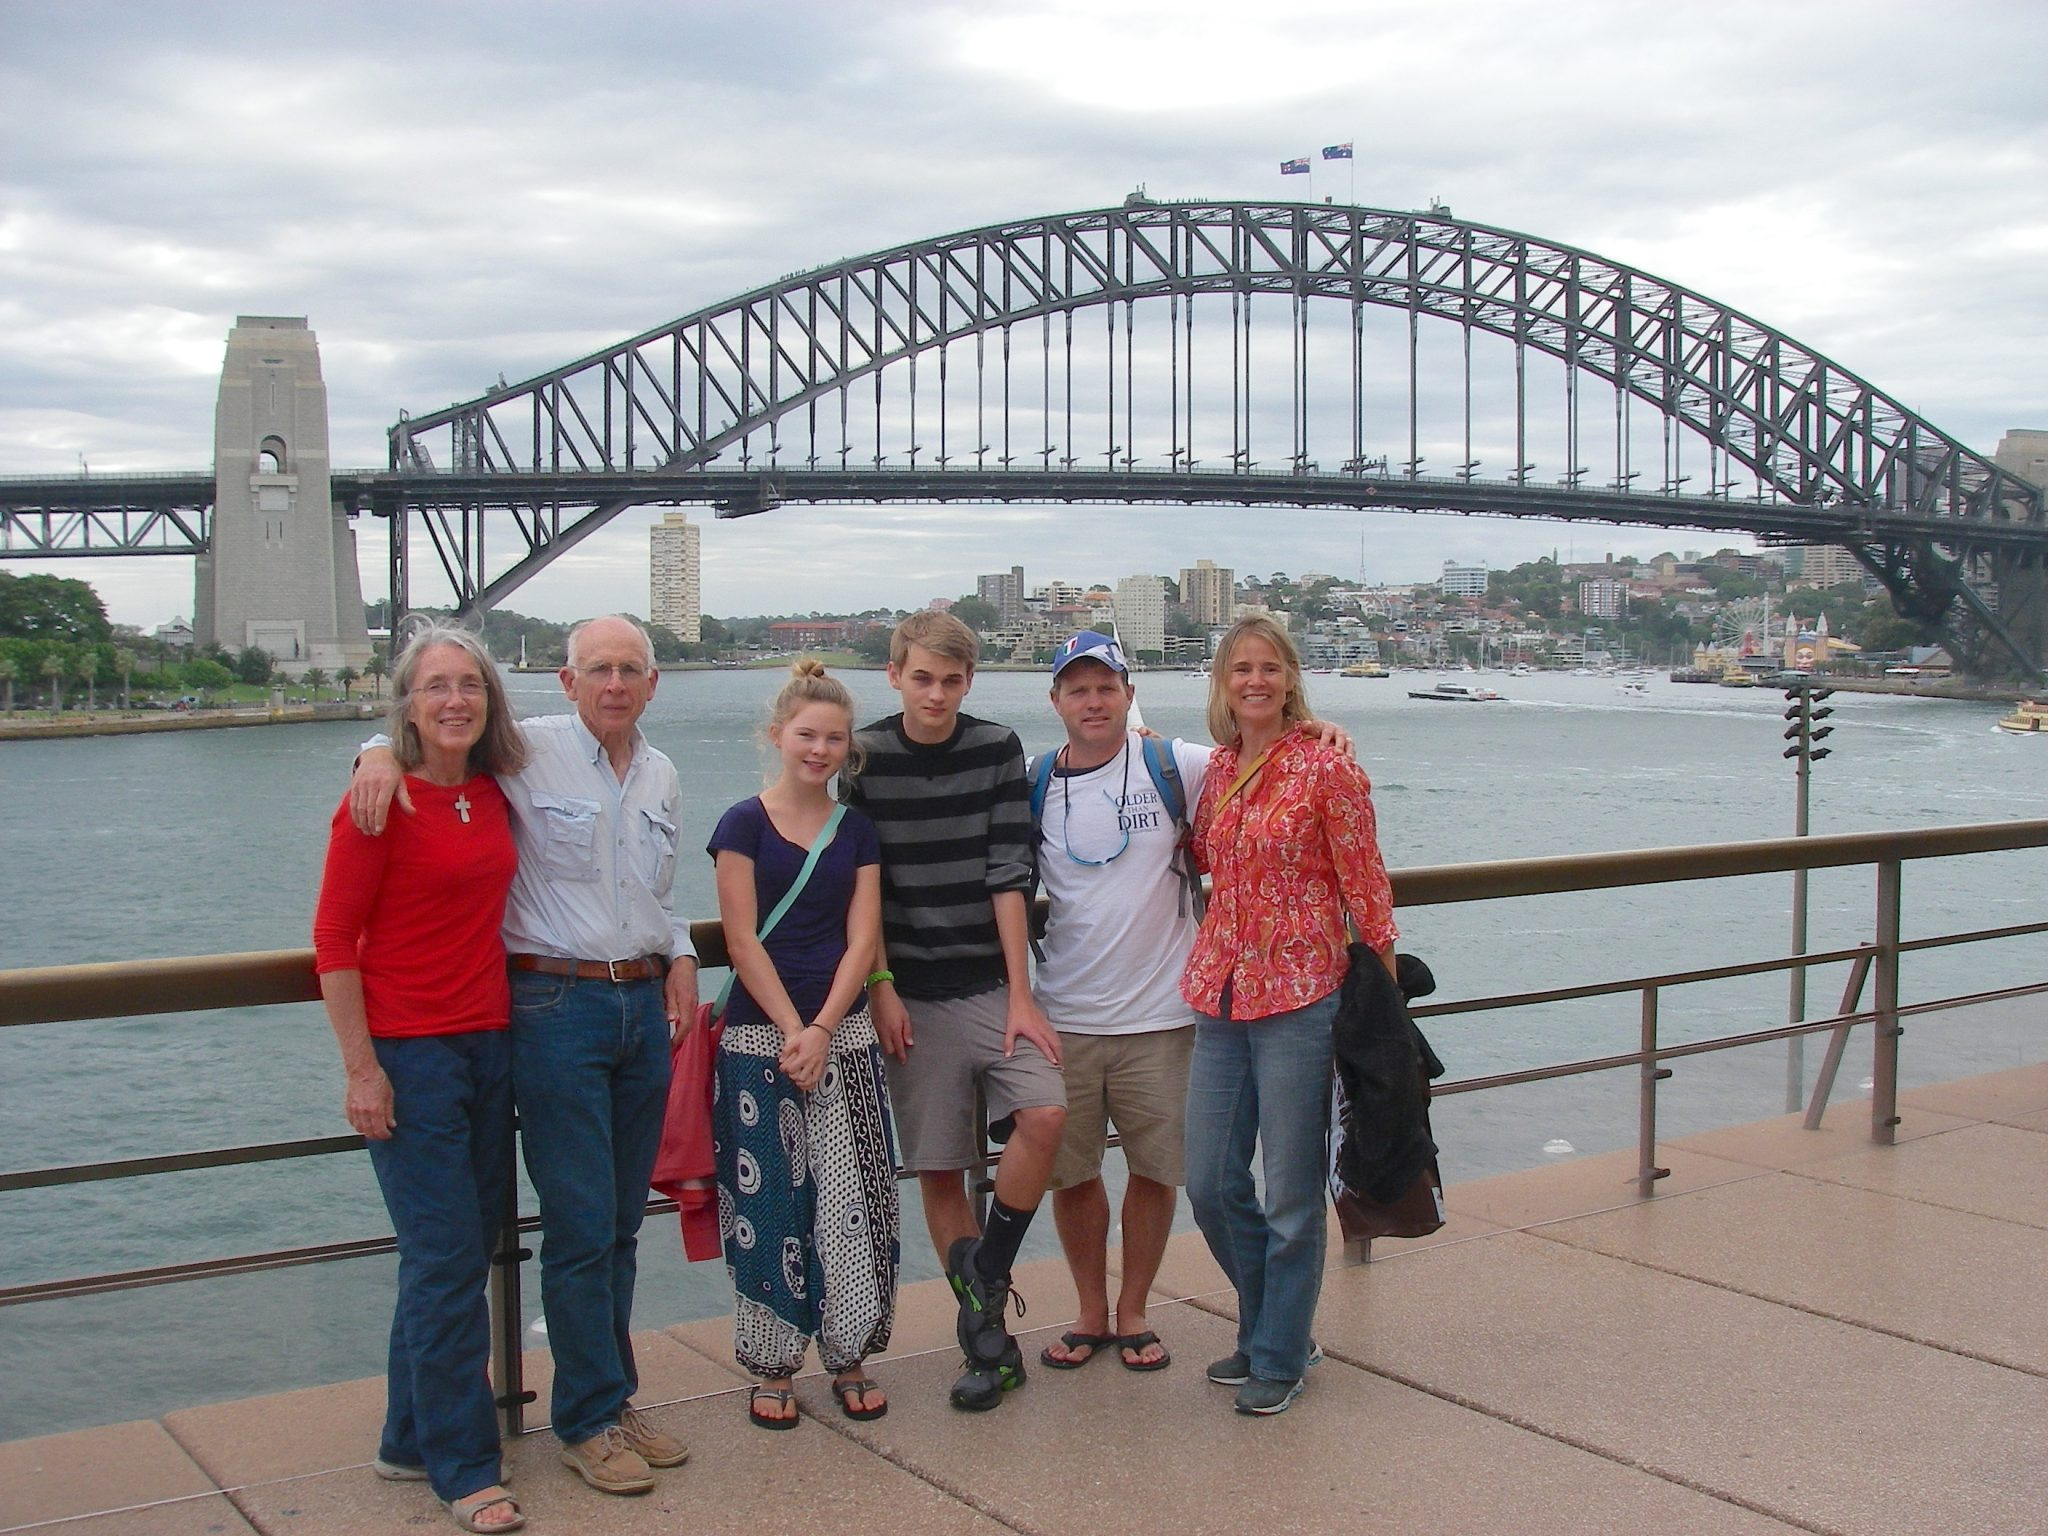 101.3. Six of the Sailors for Christ members, as we named ourselves and other sailing missionary families we met in Bora Bora, pose for a photo in front of the Sydney Bay Bridge